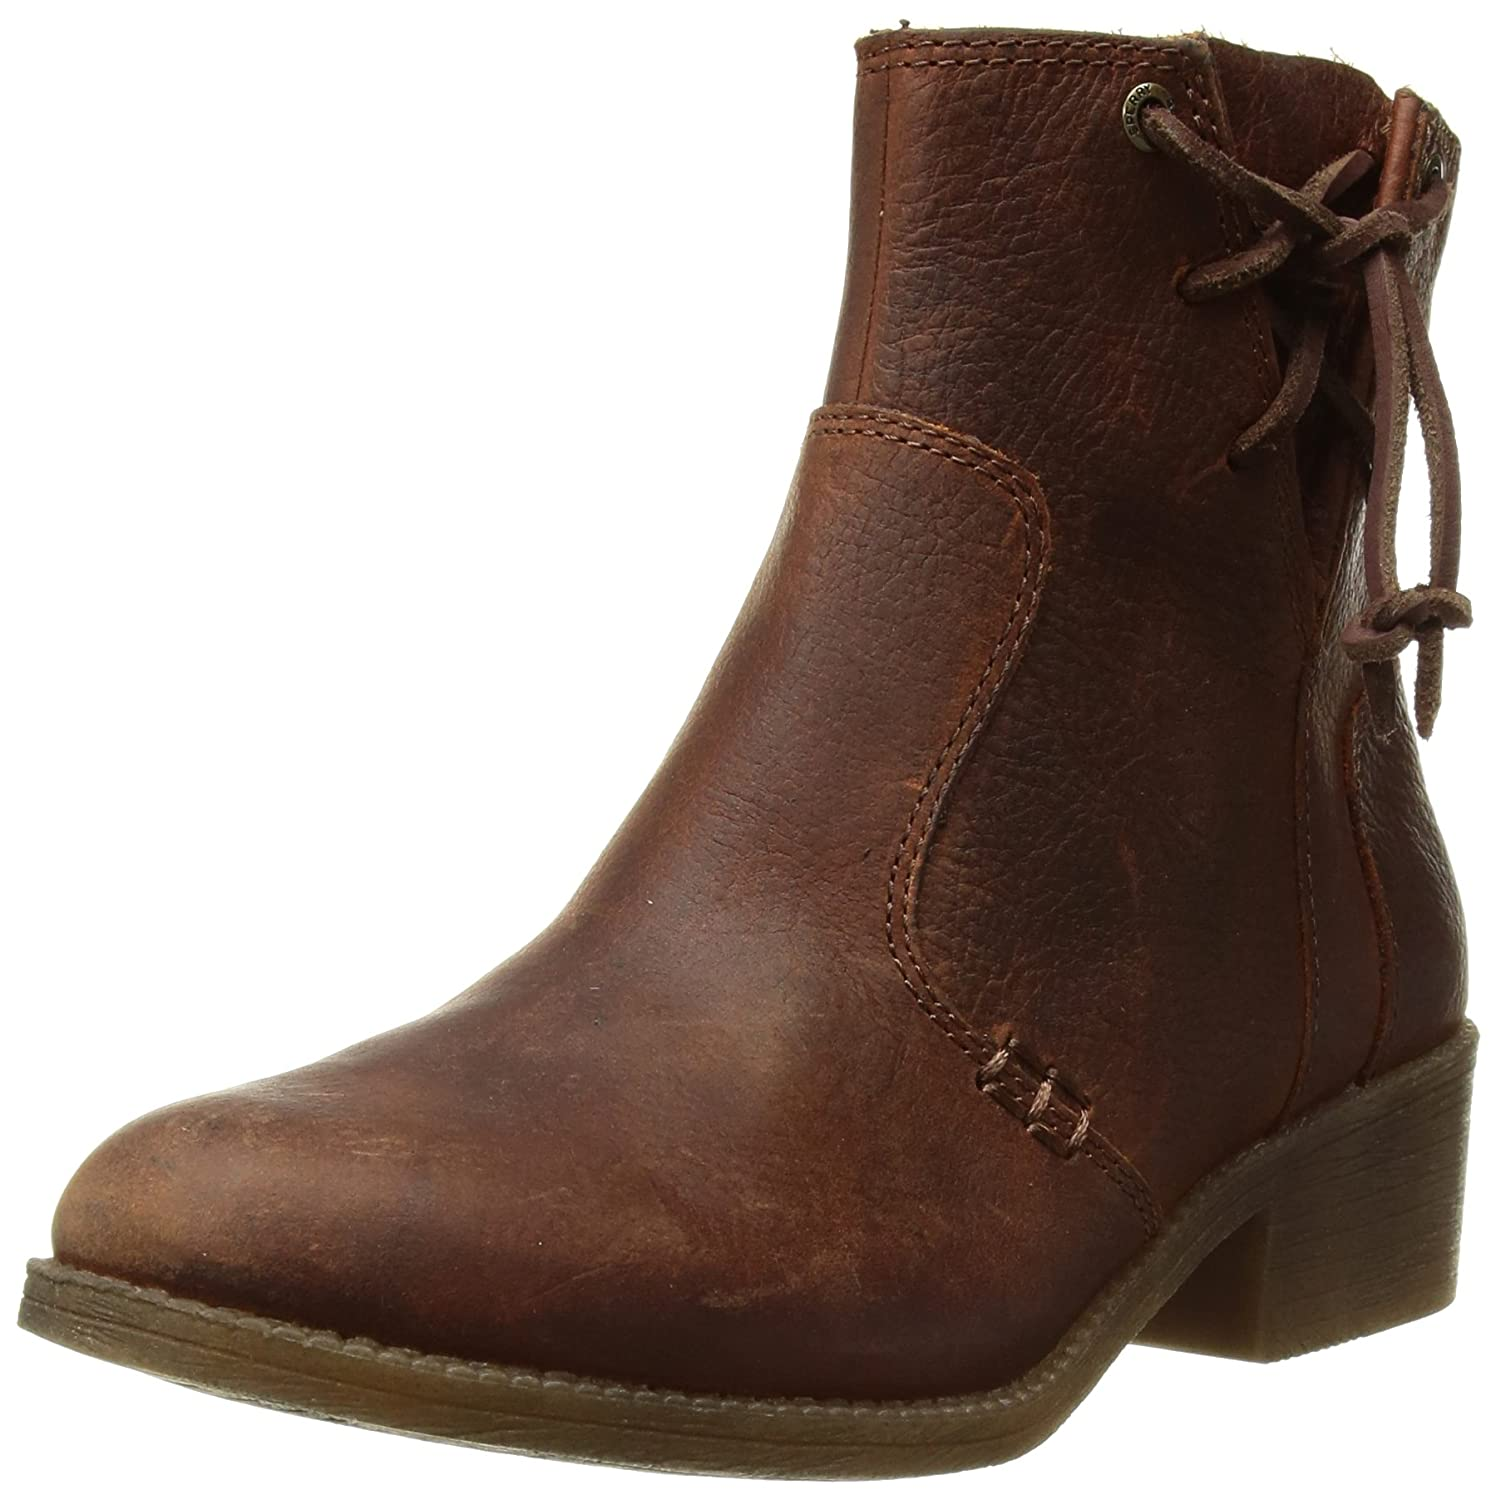 Sperry Top-Sider Women's Juniper Glyn Ankle Boot B01N7KAINO 10 B(M) US|Rust